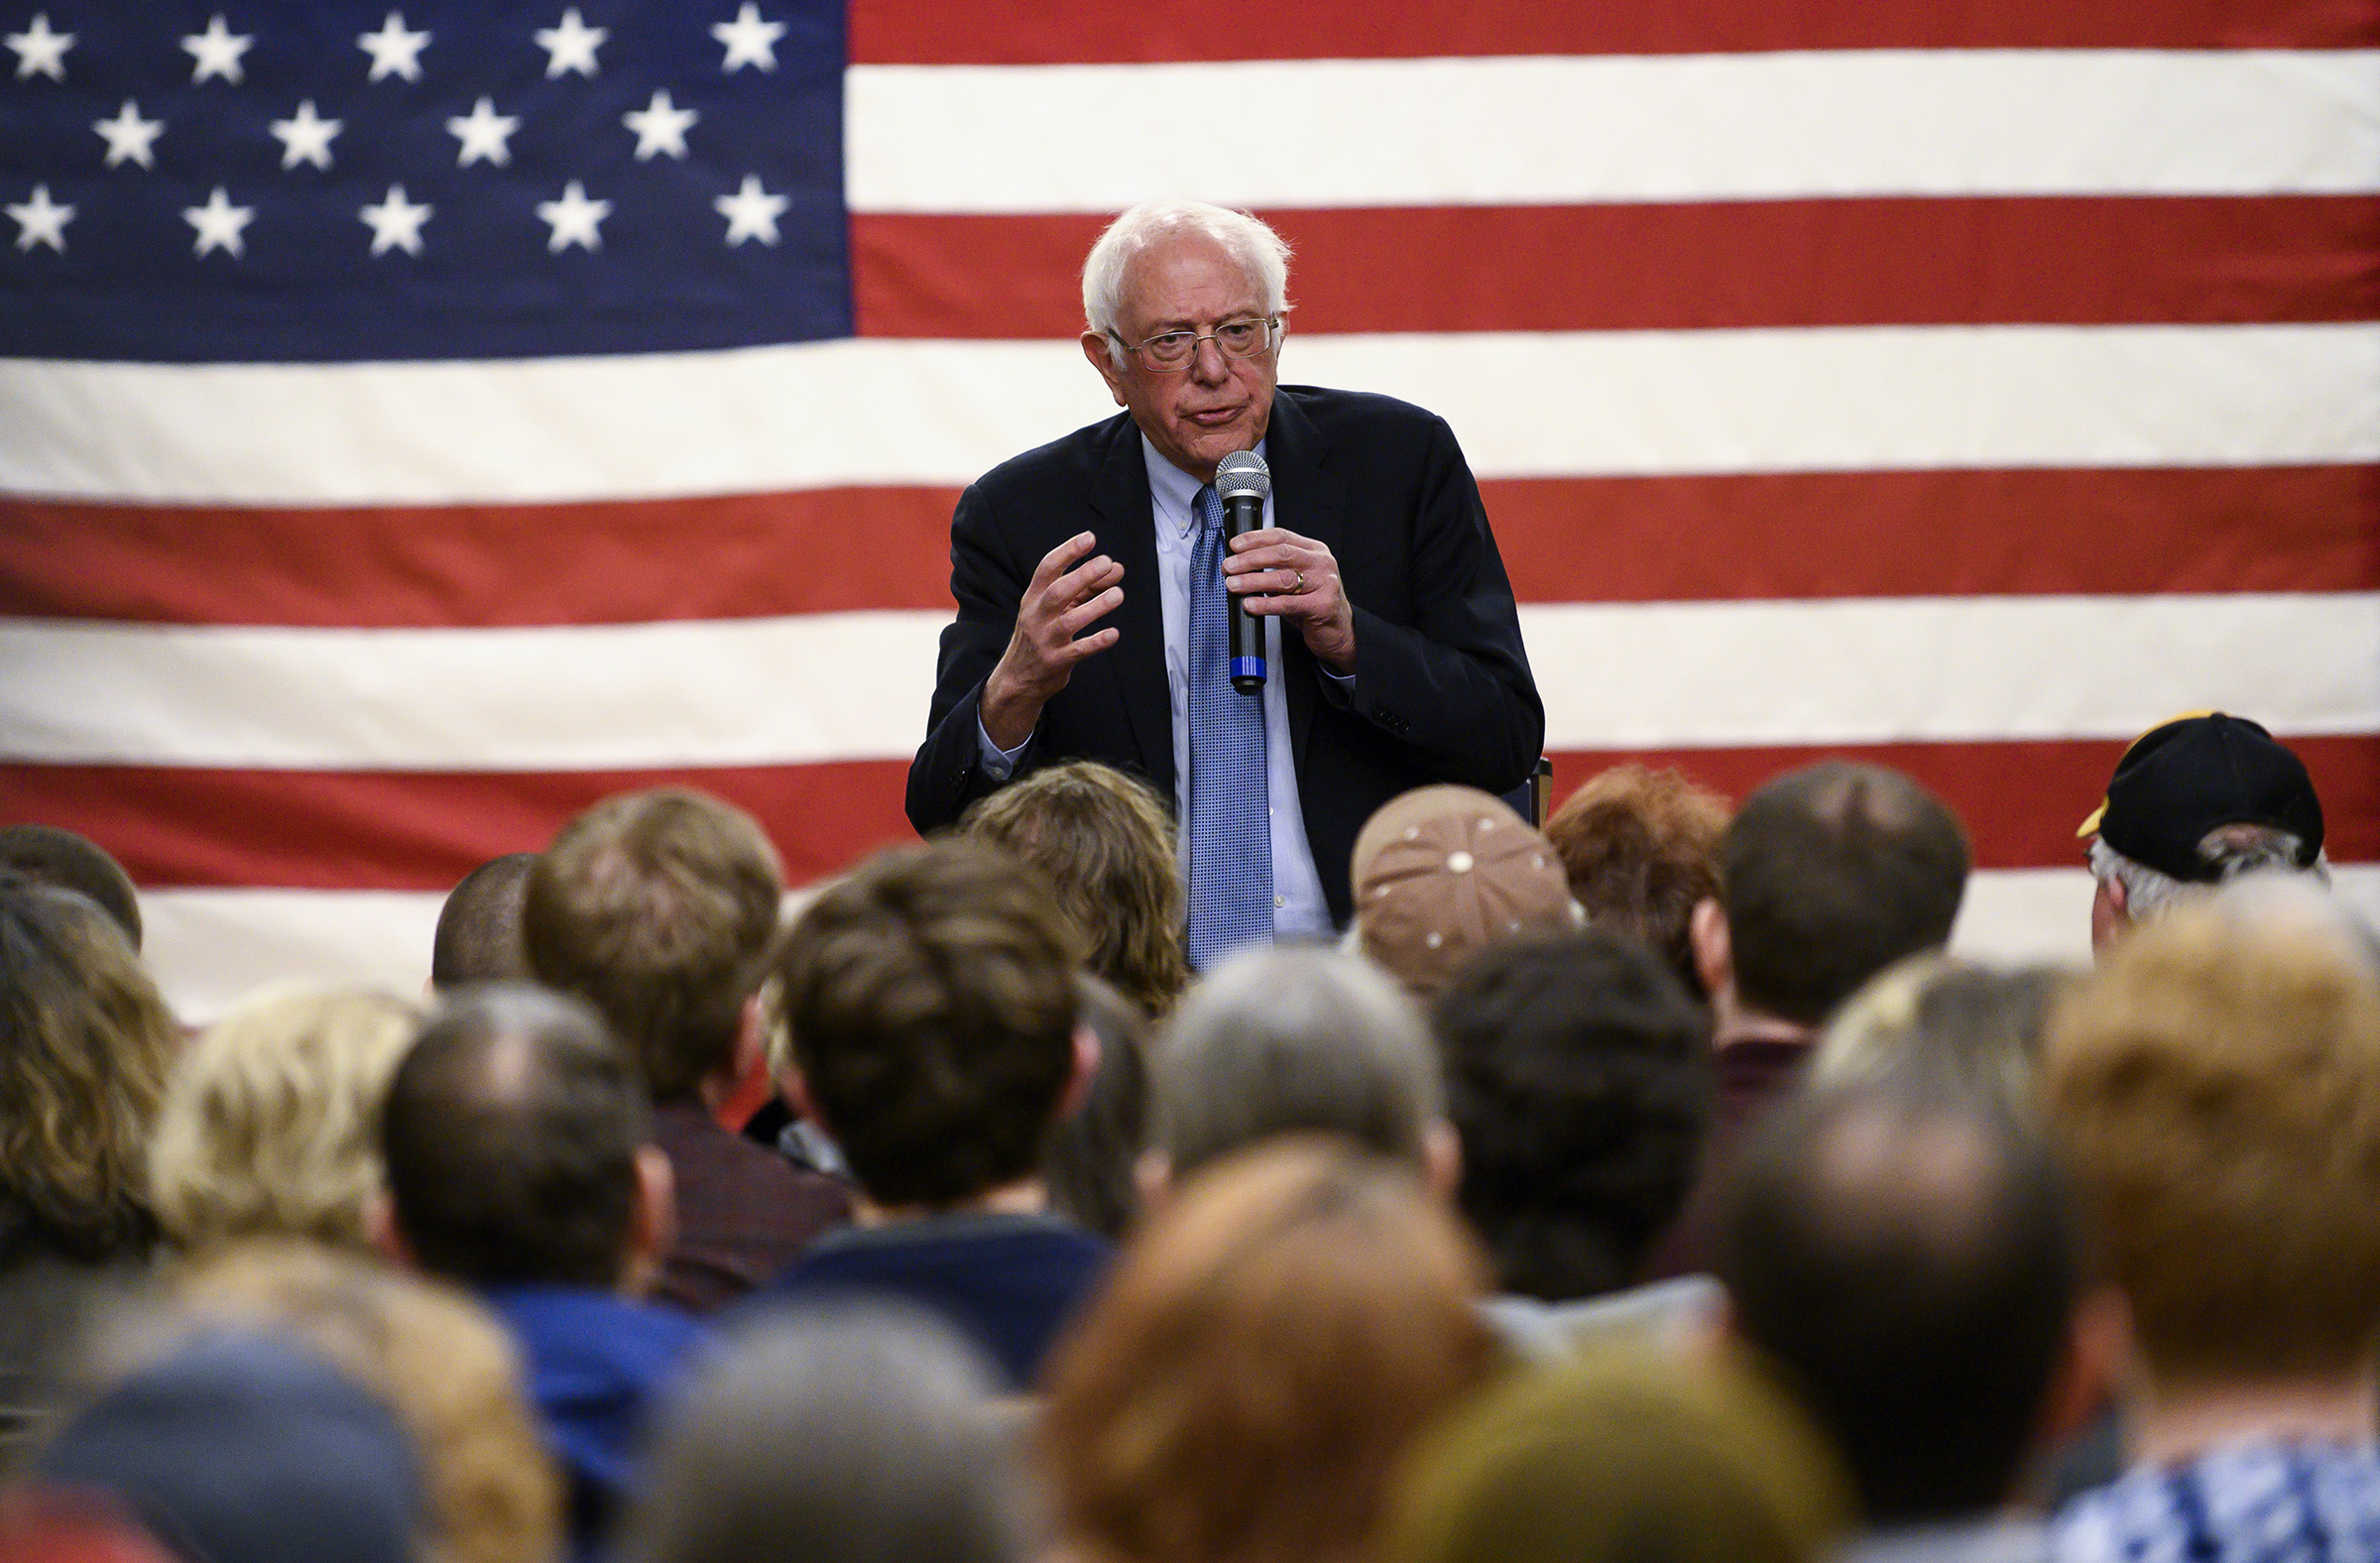 Democratic presidential candidate Sen. Bernie Sanders speaks at town hall at the National Motorcycle Museum in Anamosa, Iowa, on Jan. 3, 2020.